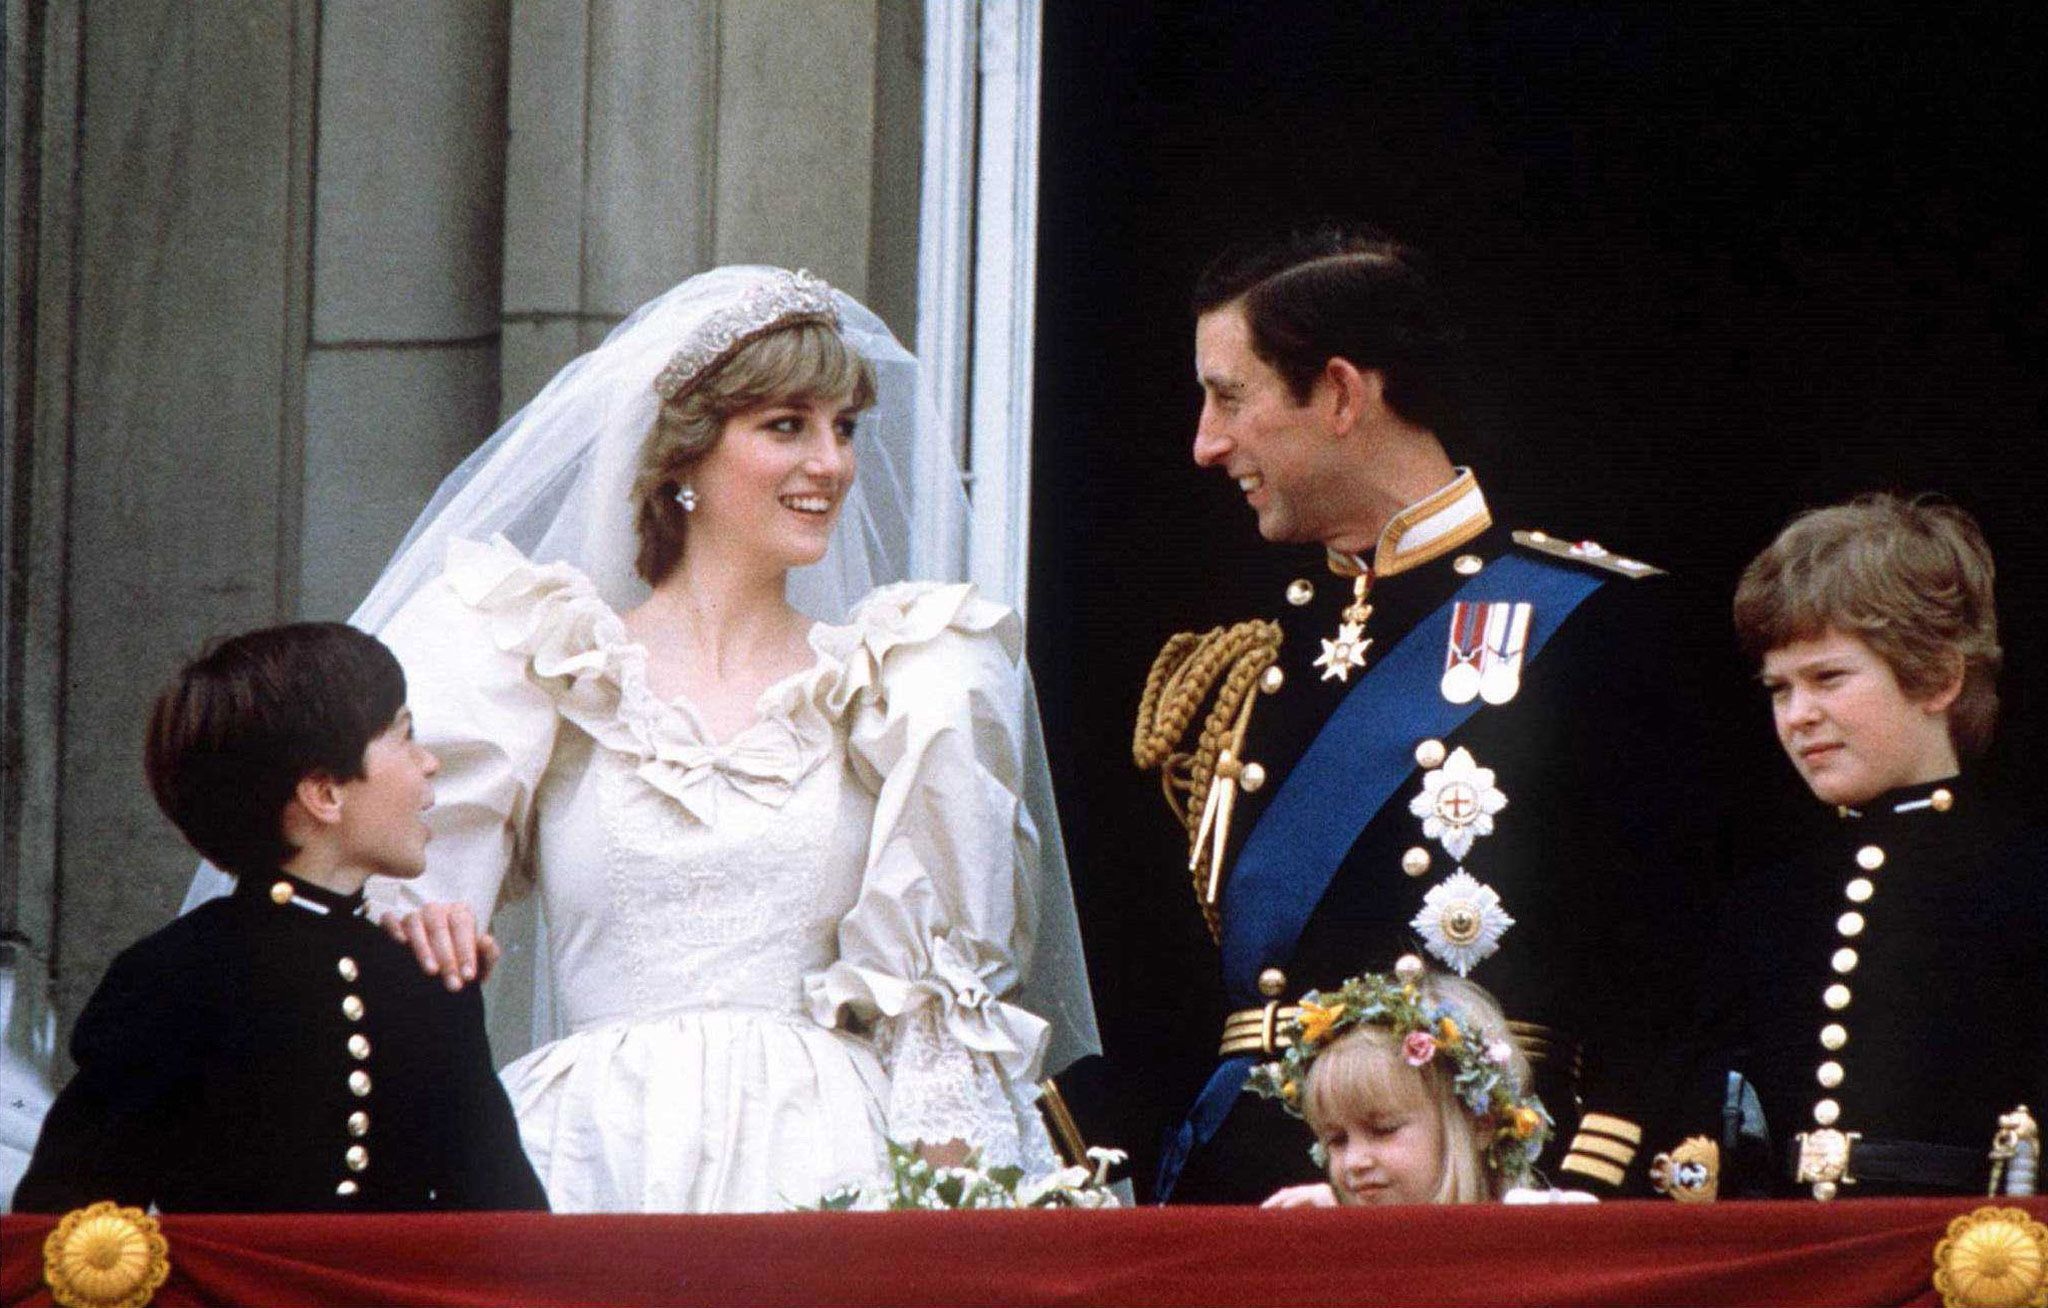 Royal Family: Diana, Princess Of Wales Commemorated On Her